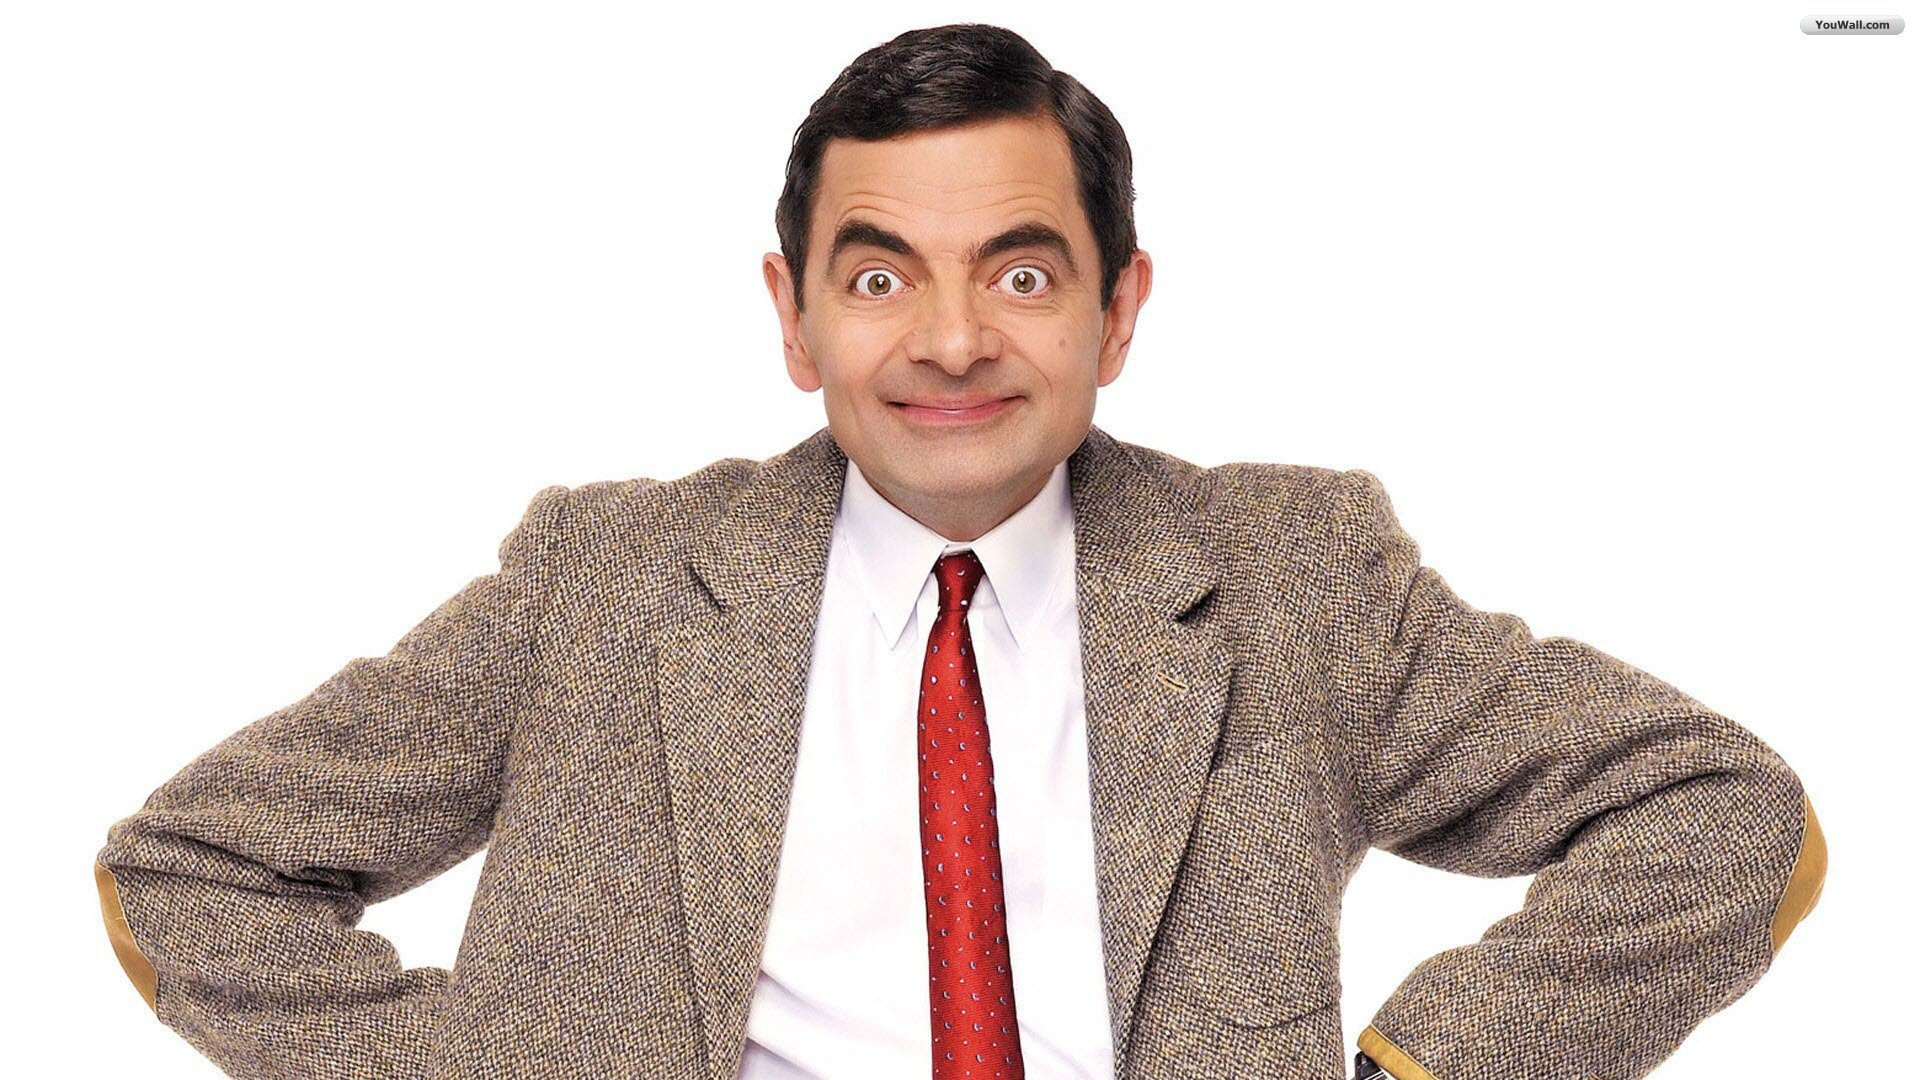 Mister Bean Wallpaper